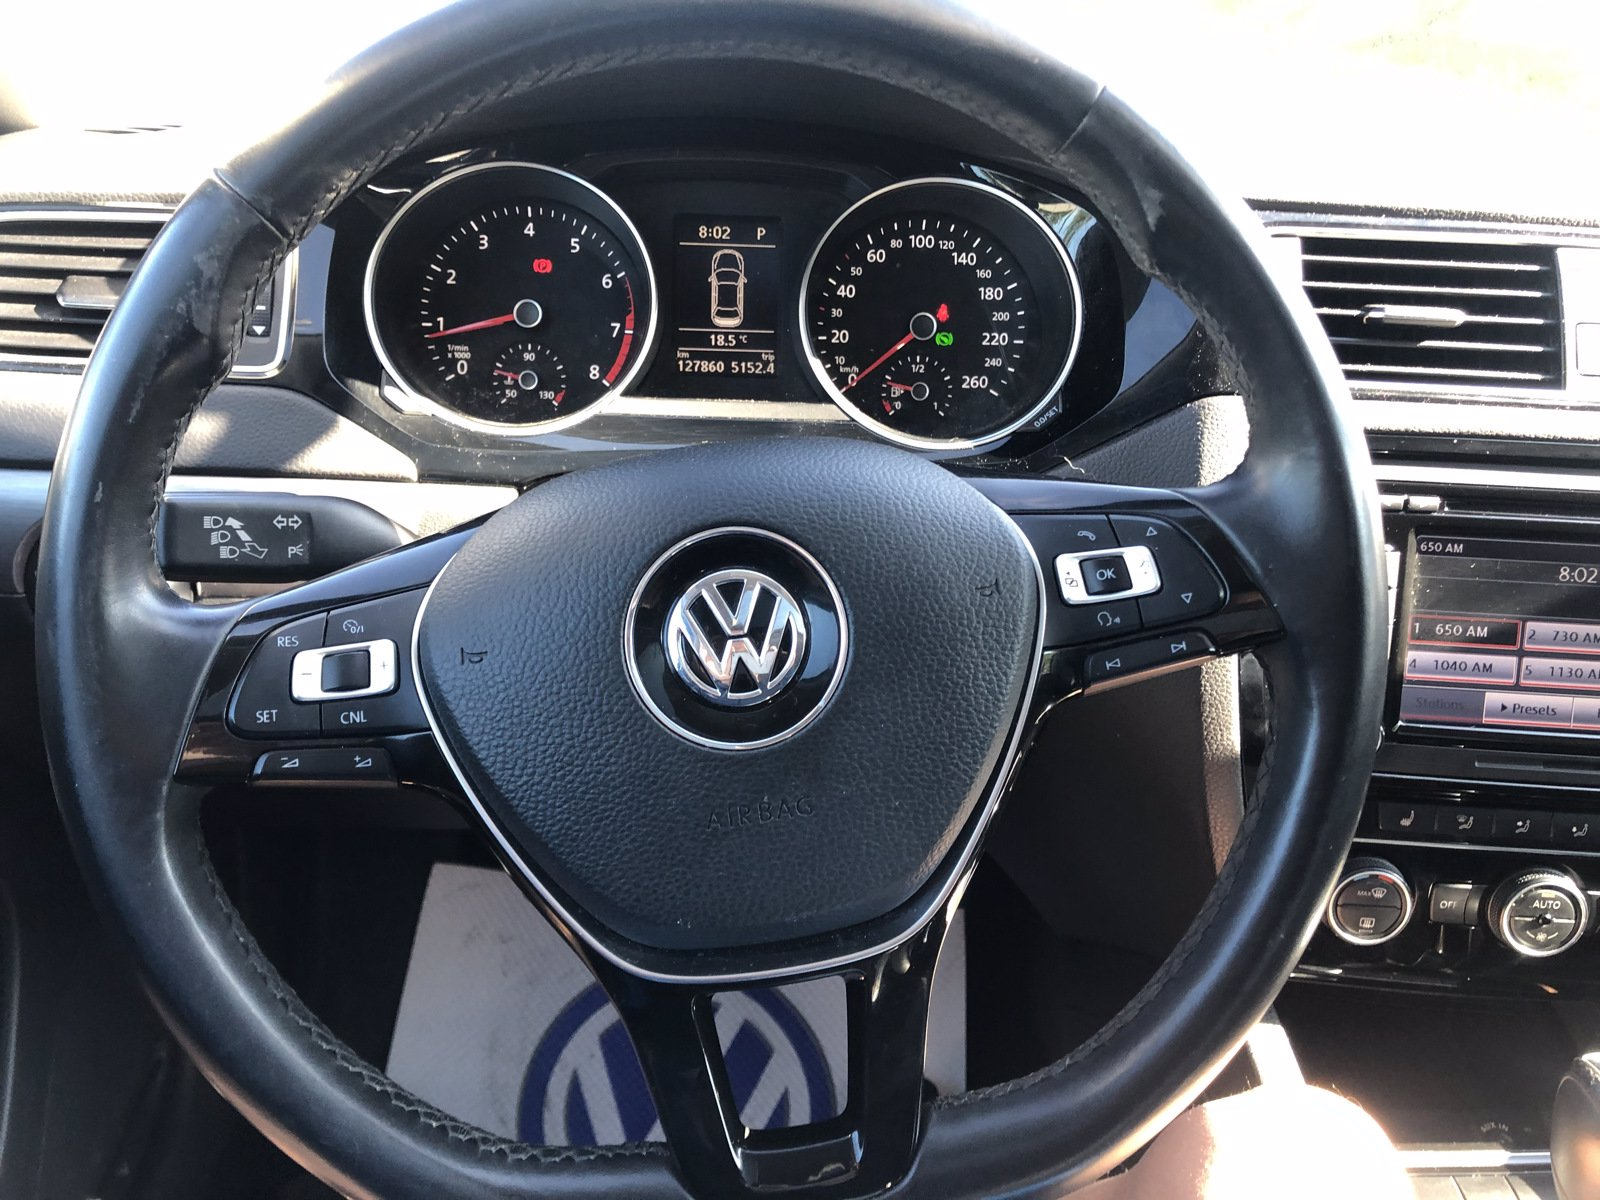 Pre-Owned 2015 Volkswagen Jetta Sedan Highline TONS OF FEATURES, GREAT PRICE, B.C. CAR!